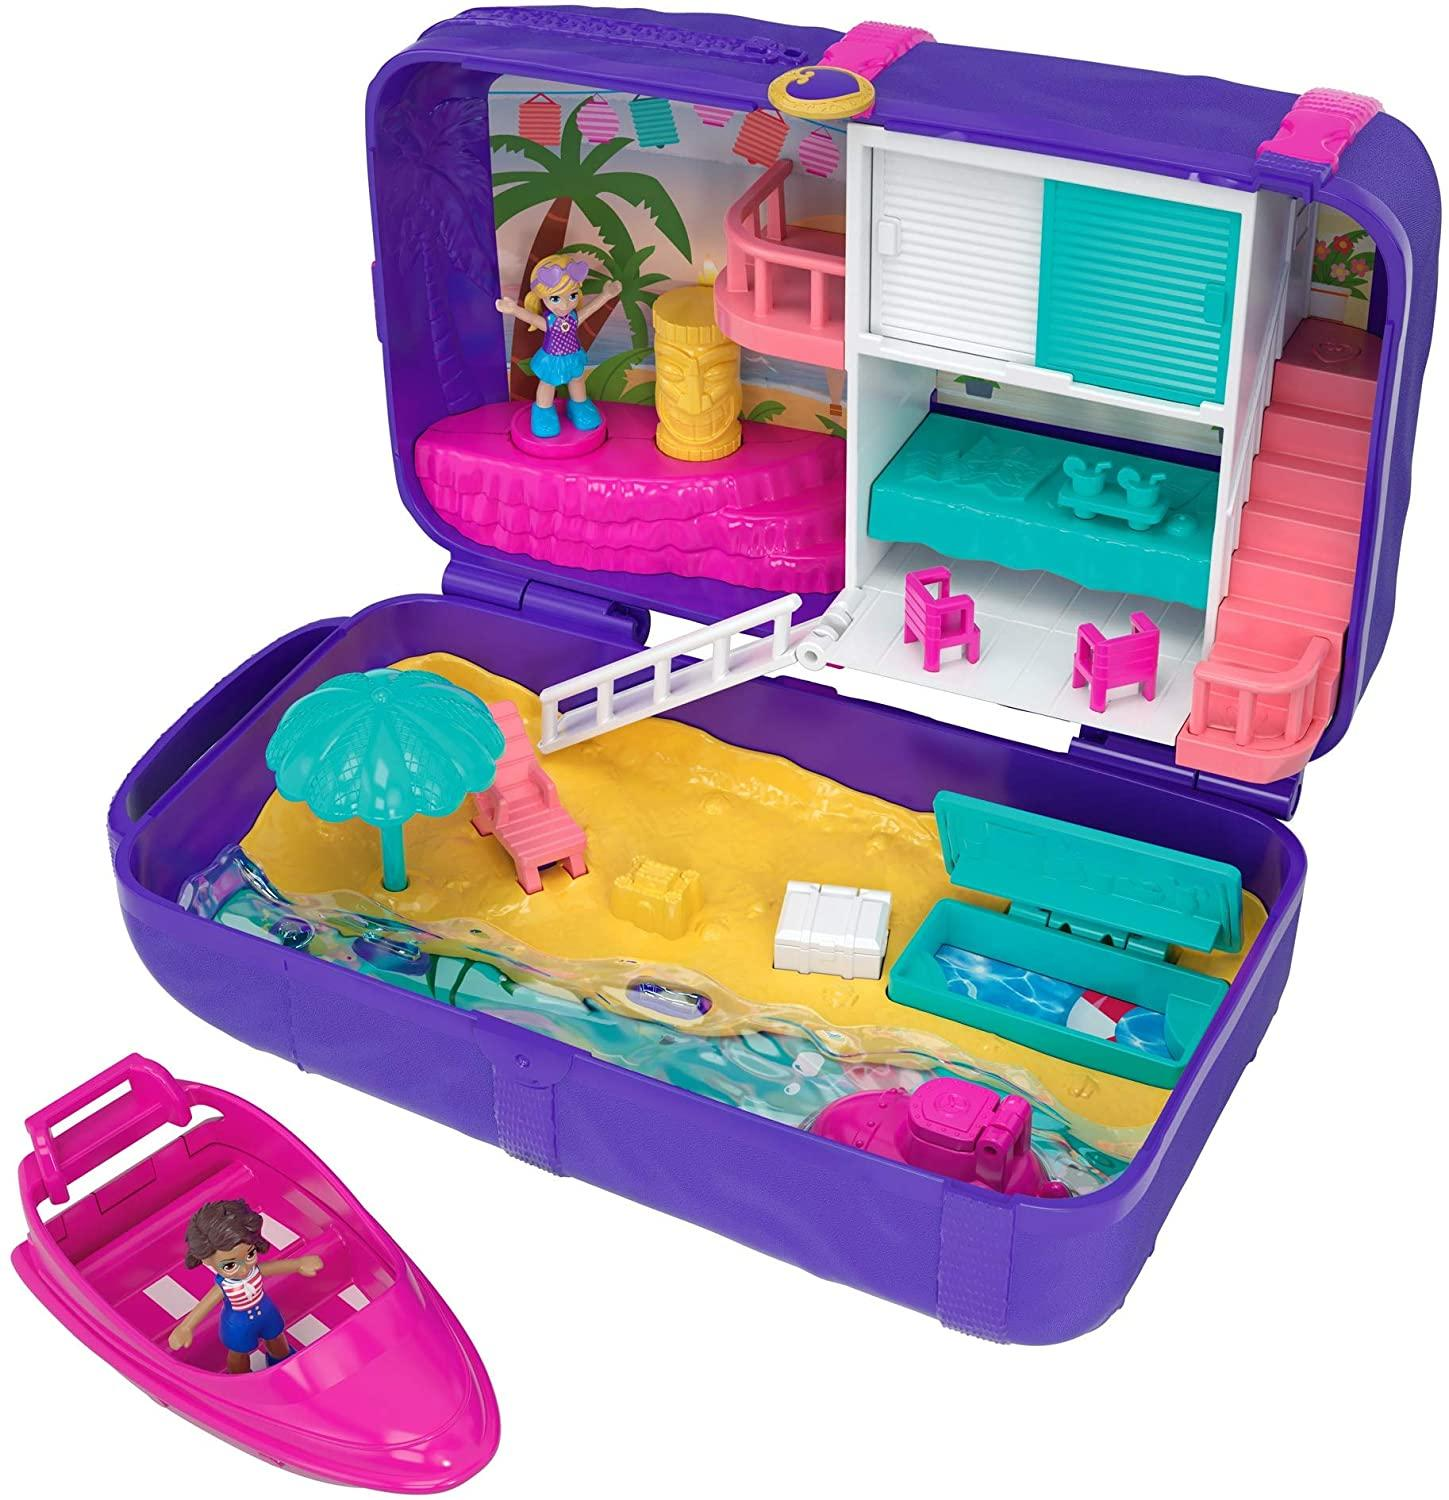 Polly Pocket Mini Τσαντάκι Έκπληξη Backpack (FRY40/FRY39)